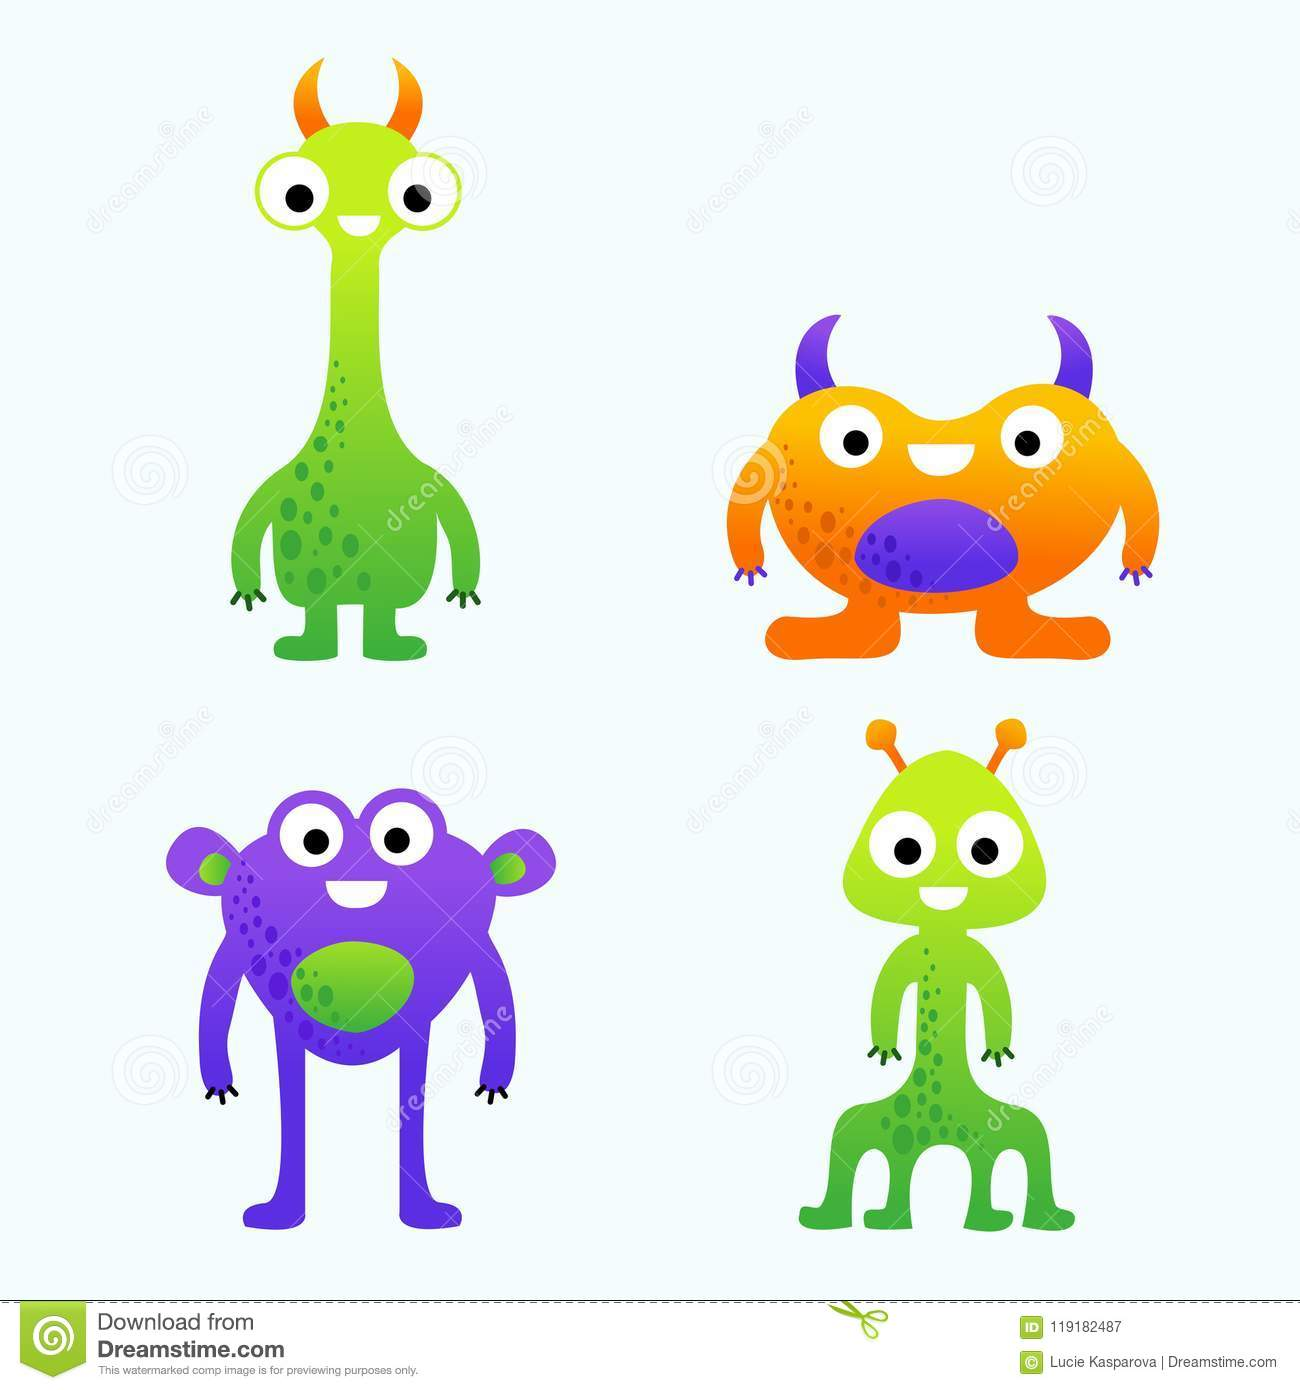 It's just a picture of Stupendous Monster Pictures for Kids